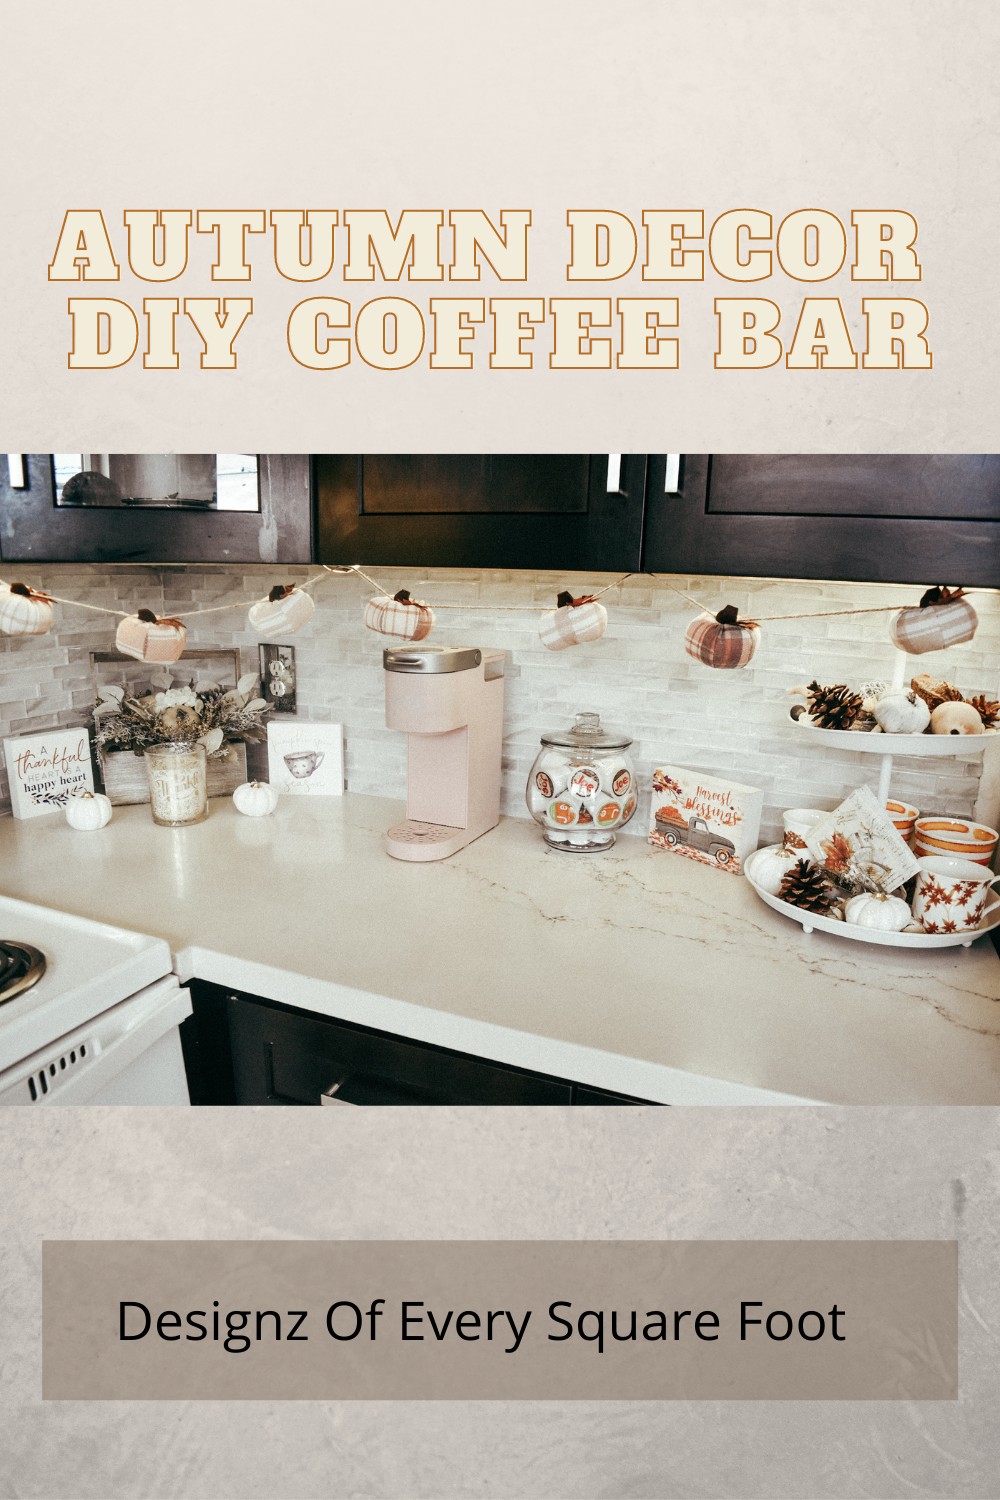 Decorate your coffee bar for this fall #fallidease #falldecorsations #falldecoring #autumn #fall #homedecorinspiration #falldiydecor #decorfallhome #decorationhomeforfall #falldecorprojects #thanksgivingdecorations #love #thanks #coffee #pumpkinspice